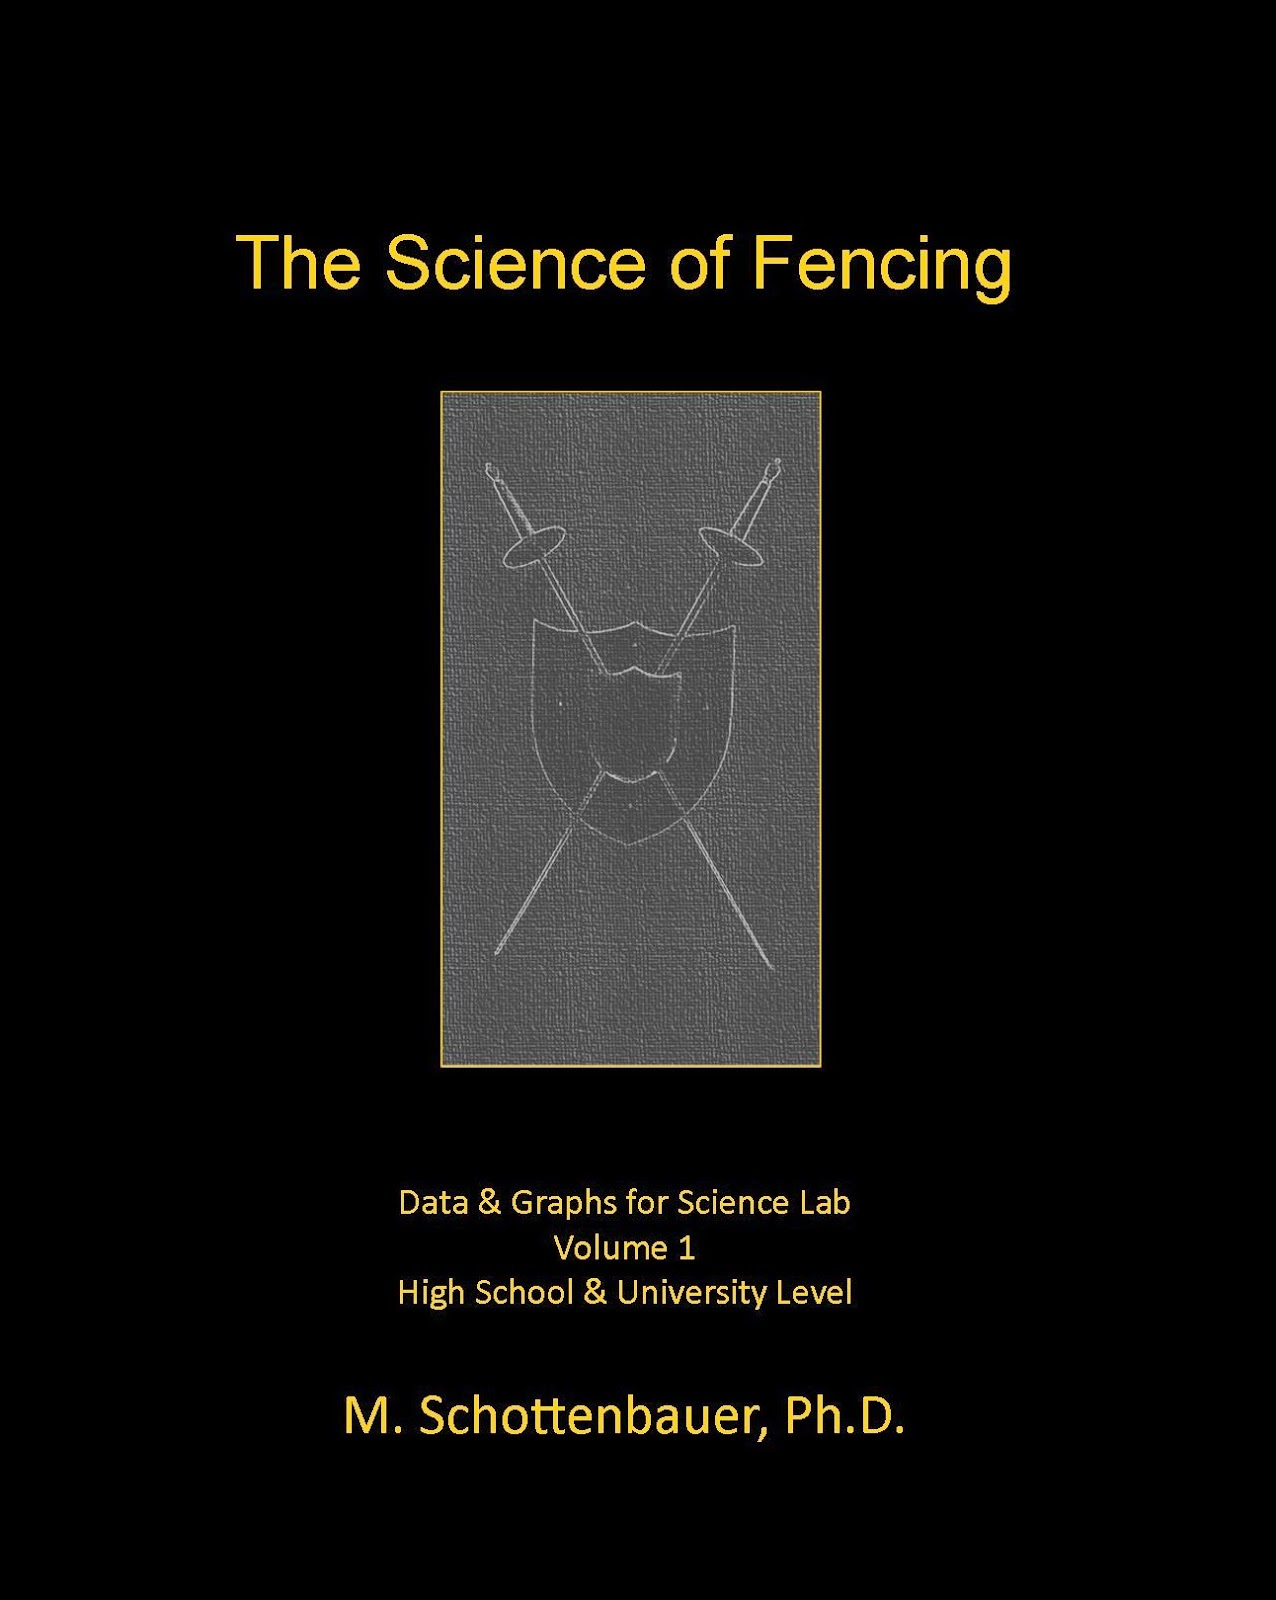 Schottenbauer Publishing  New Sport Science Books  Graphs Of Snow Sports  U0026 Fencing